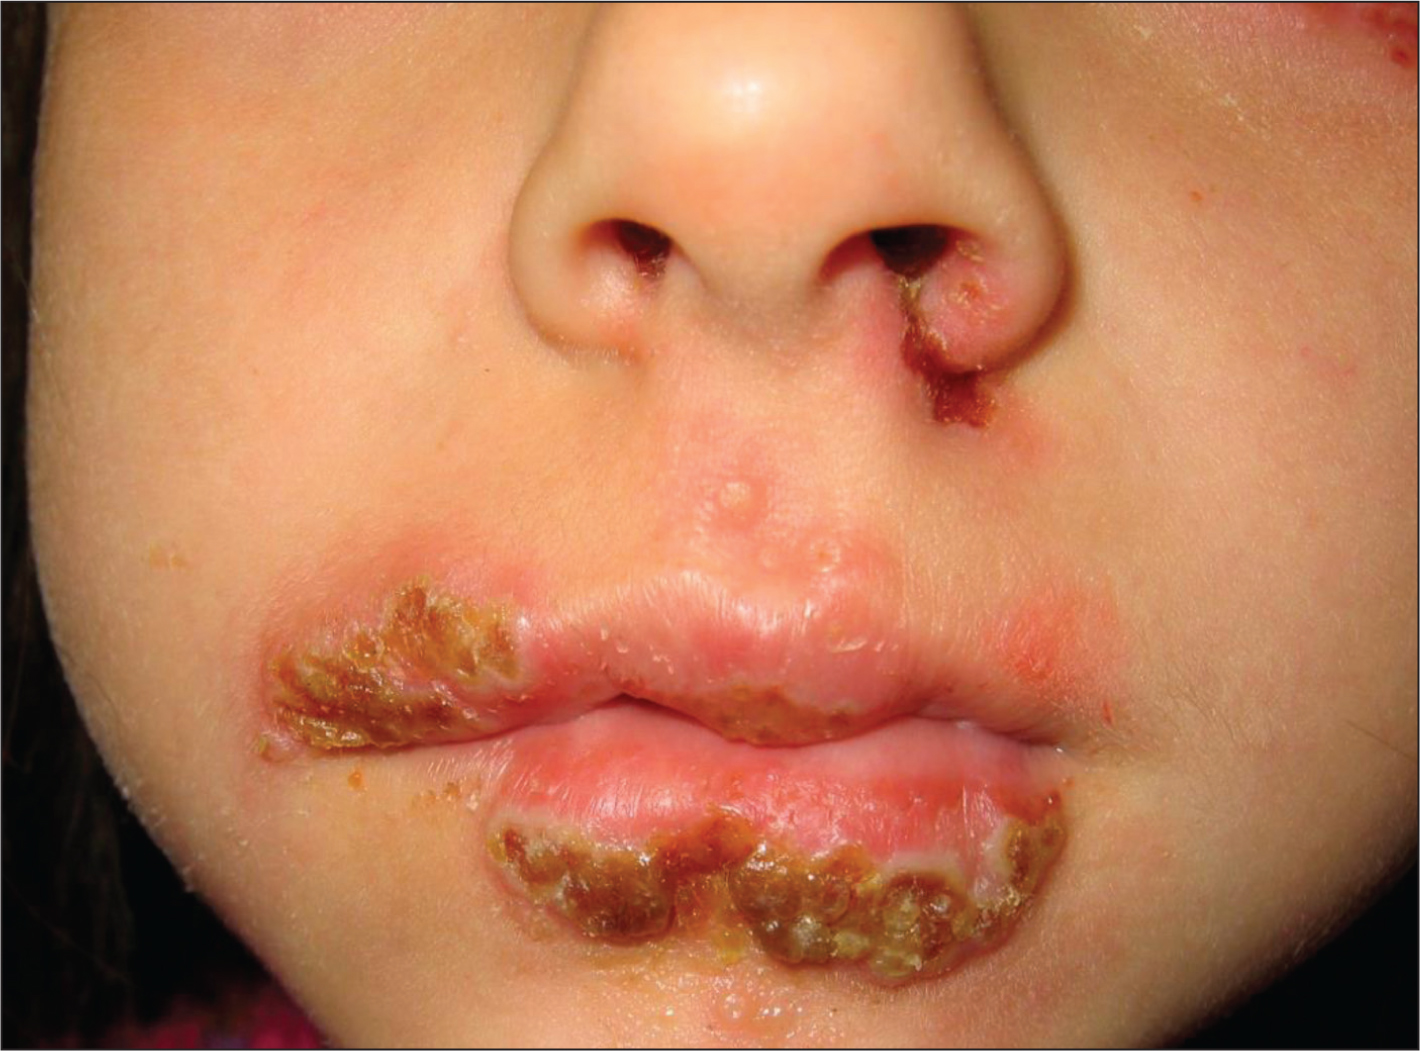 Severe presentation of eczema herpeticum on the face of a 6-year-old white female. It was infected with both herpes simplex and methicillin-resistant Staphylococcus aureus. She required in-patient parenteral antimicrobials for both infections.